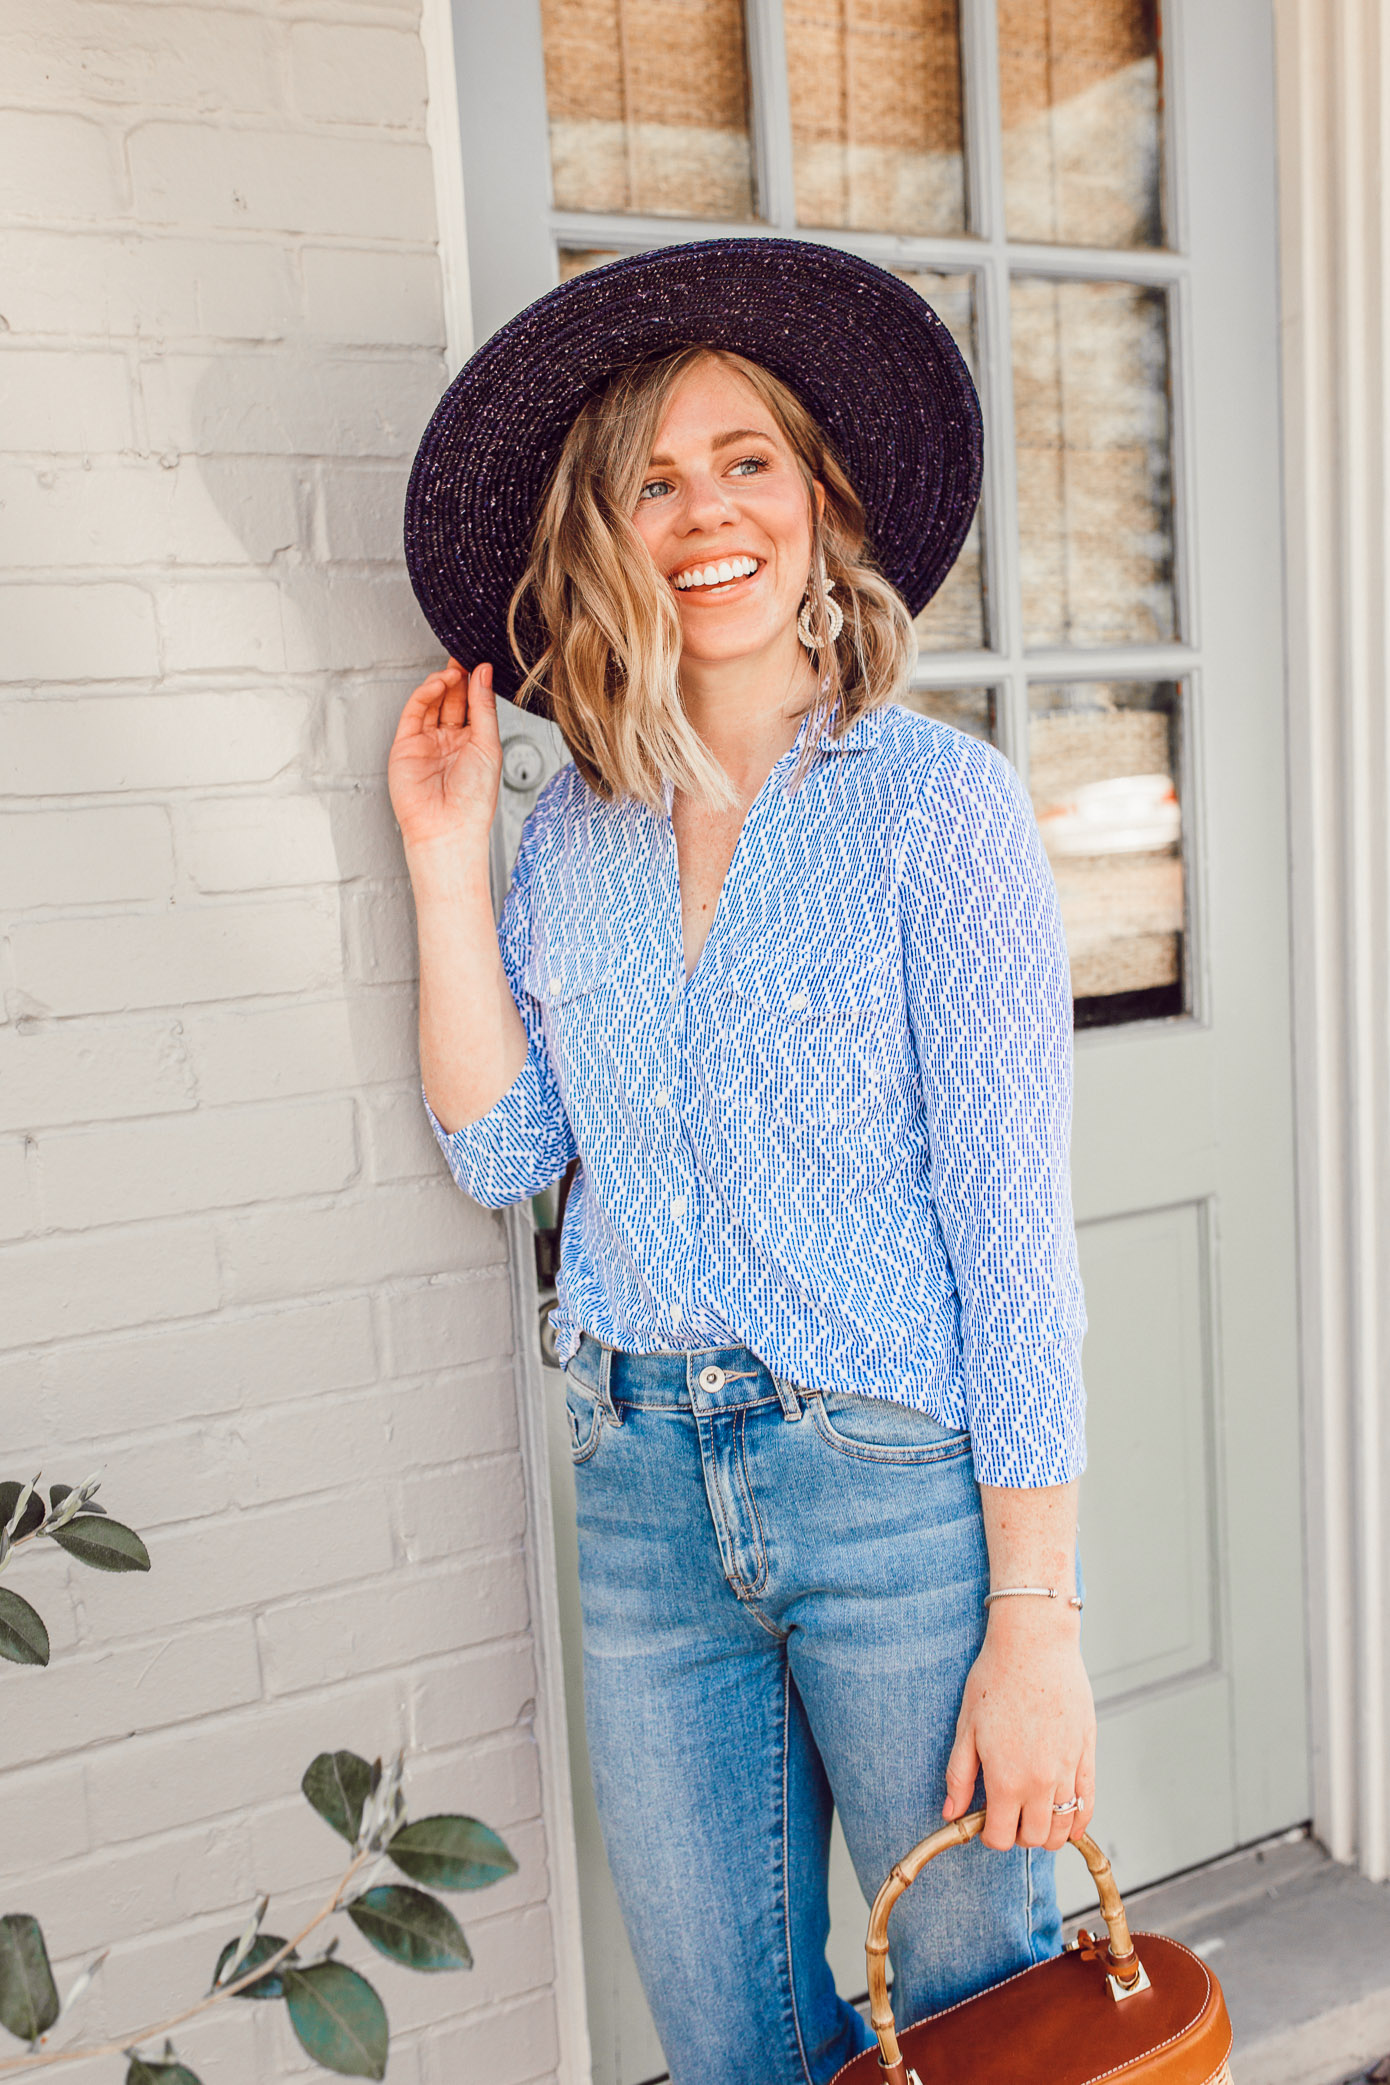 Blue and white outfit ideas to get you in the mood for spring | ft. J.McLaughlin, Brixton | Louella Reese